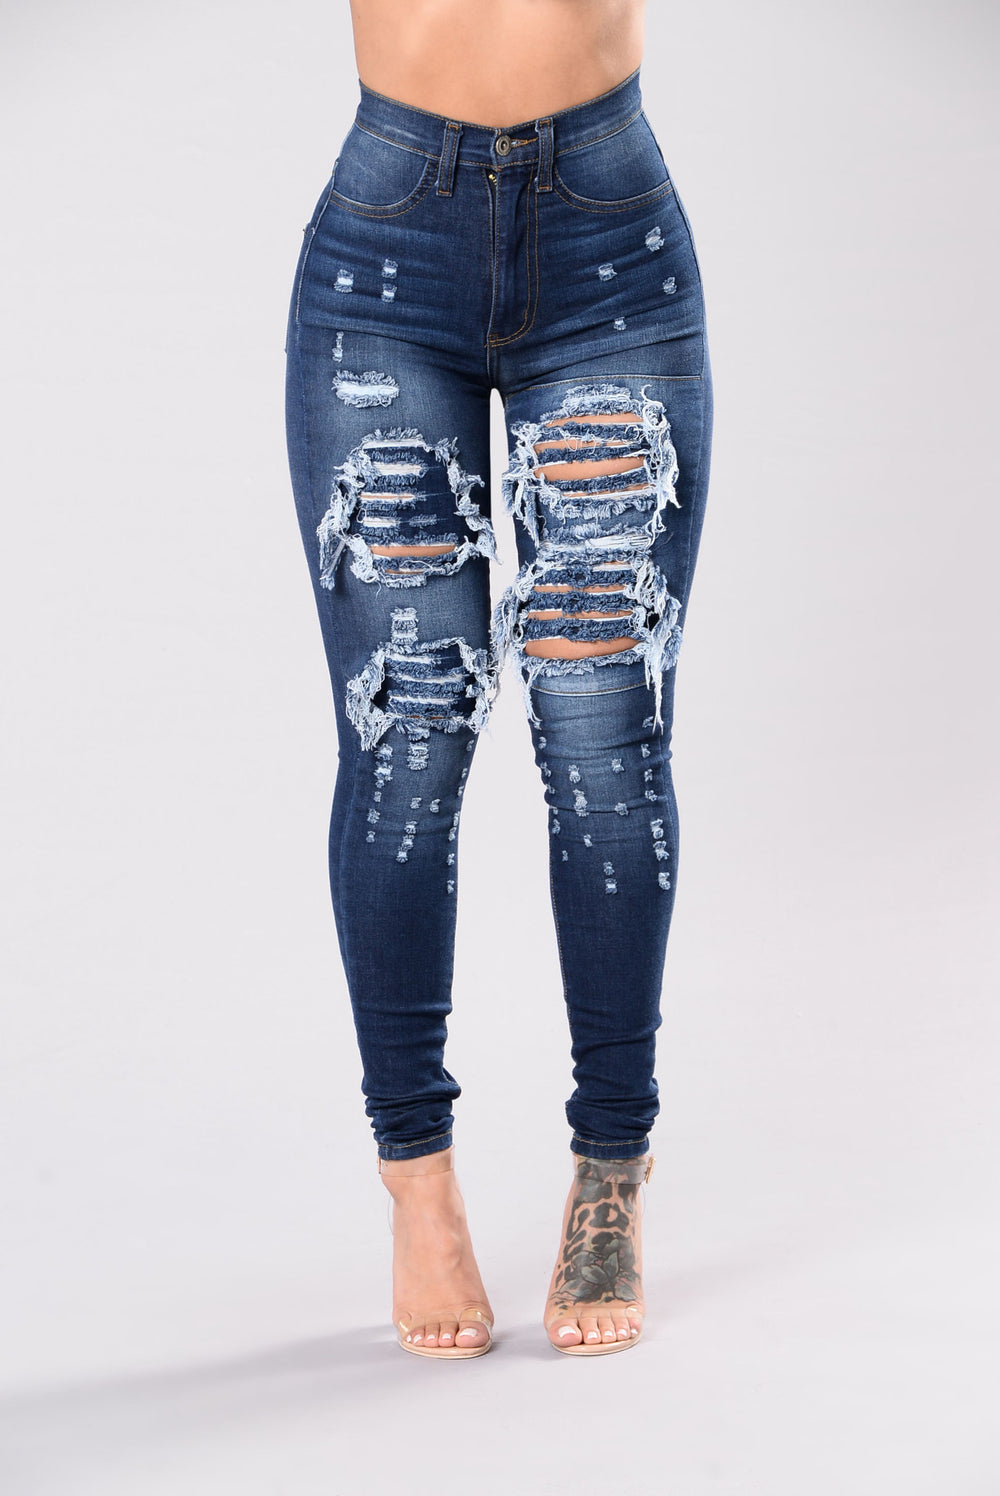 Denim Dreams Jeans - Medium Blue